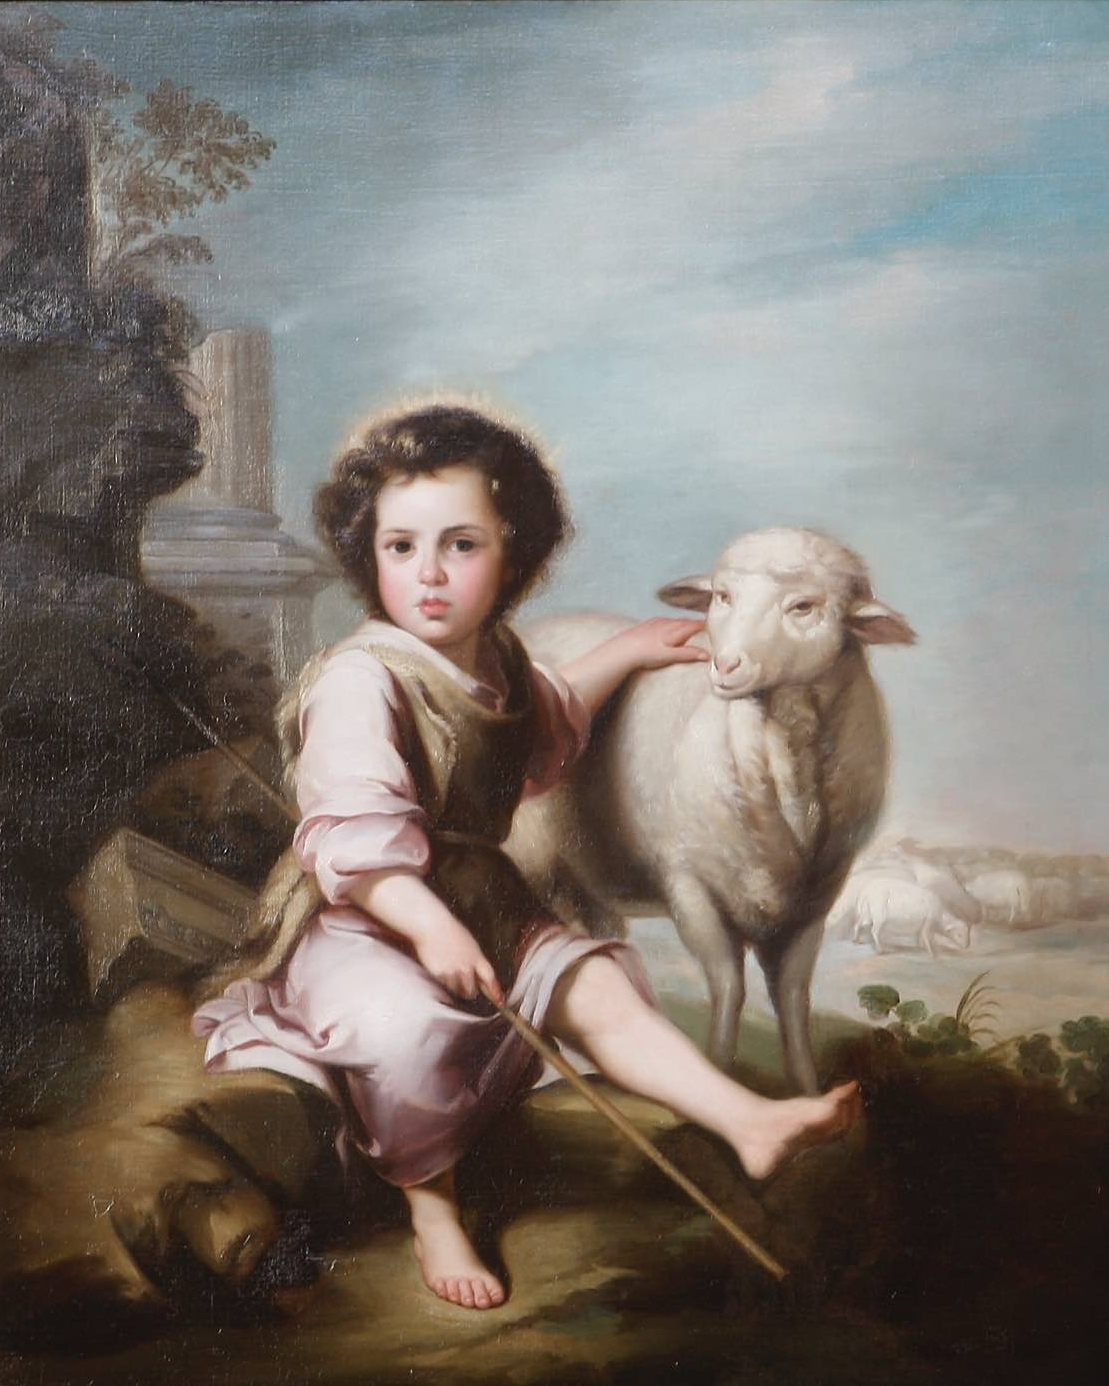 The Good Shepherd - This painting is another Murillo copy. The original hangs in the Museo del Prado in Madrid.